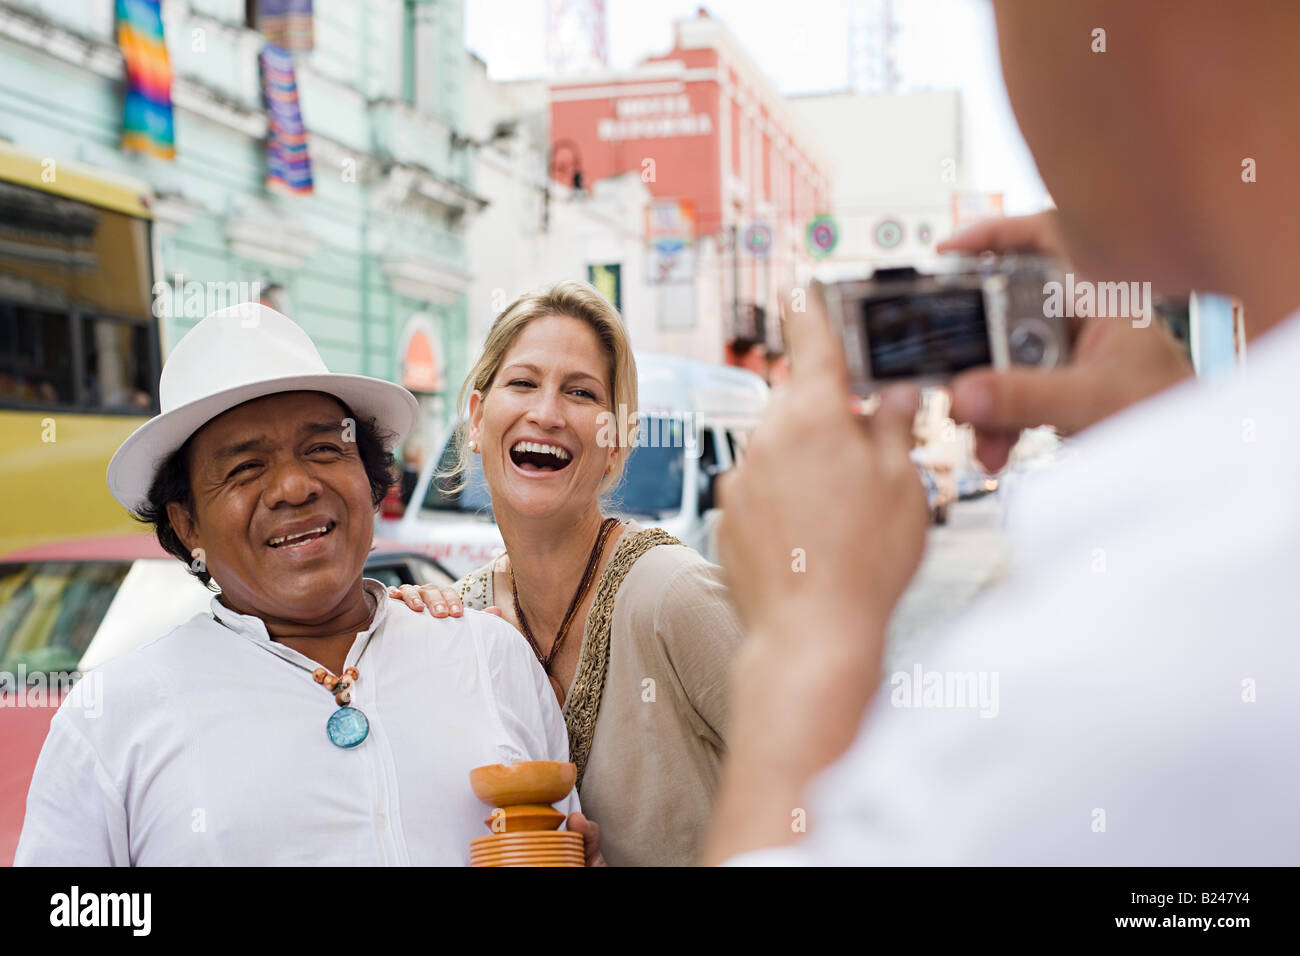 People being photographed - Stock Image